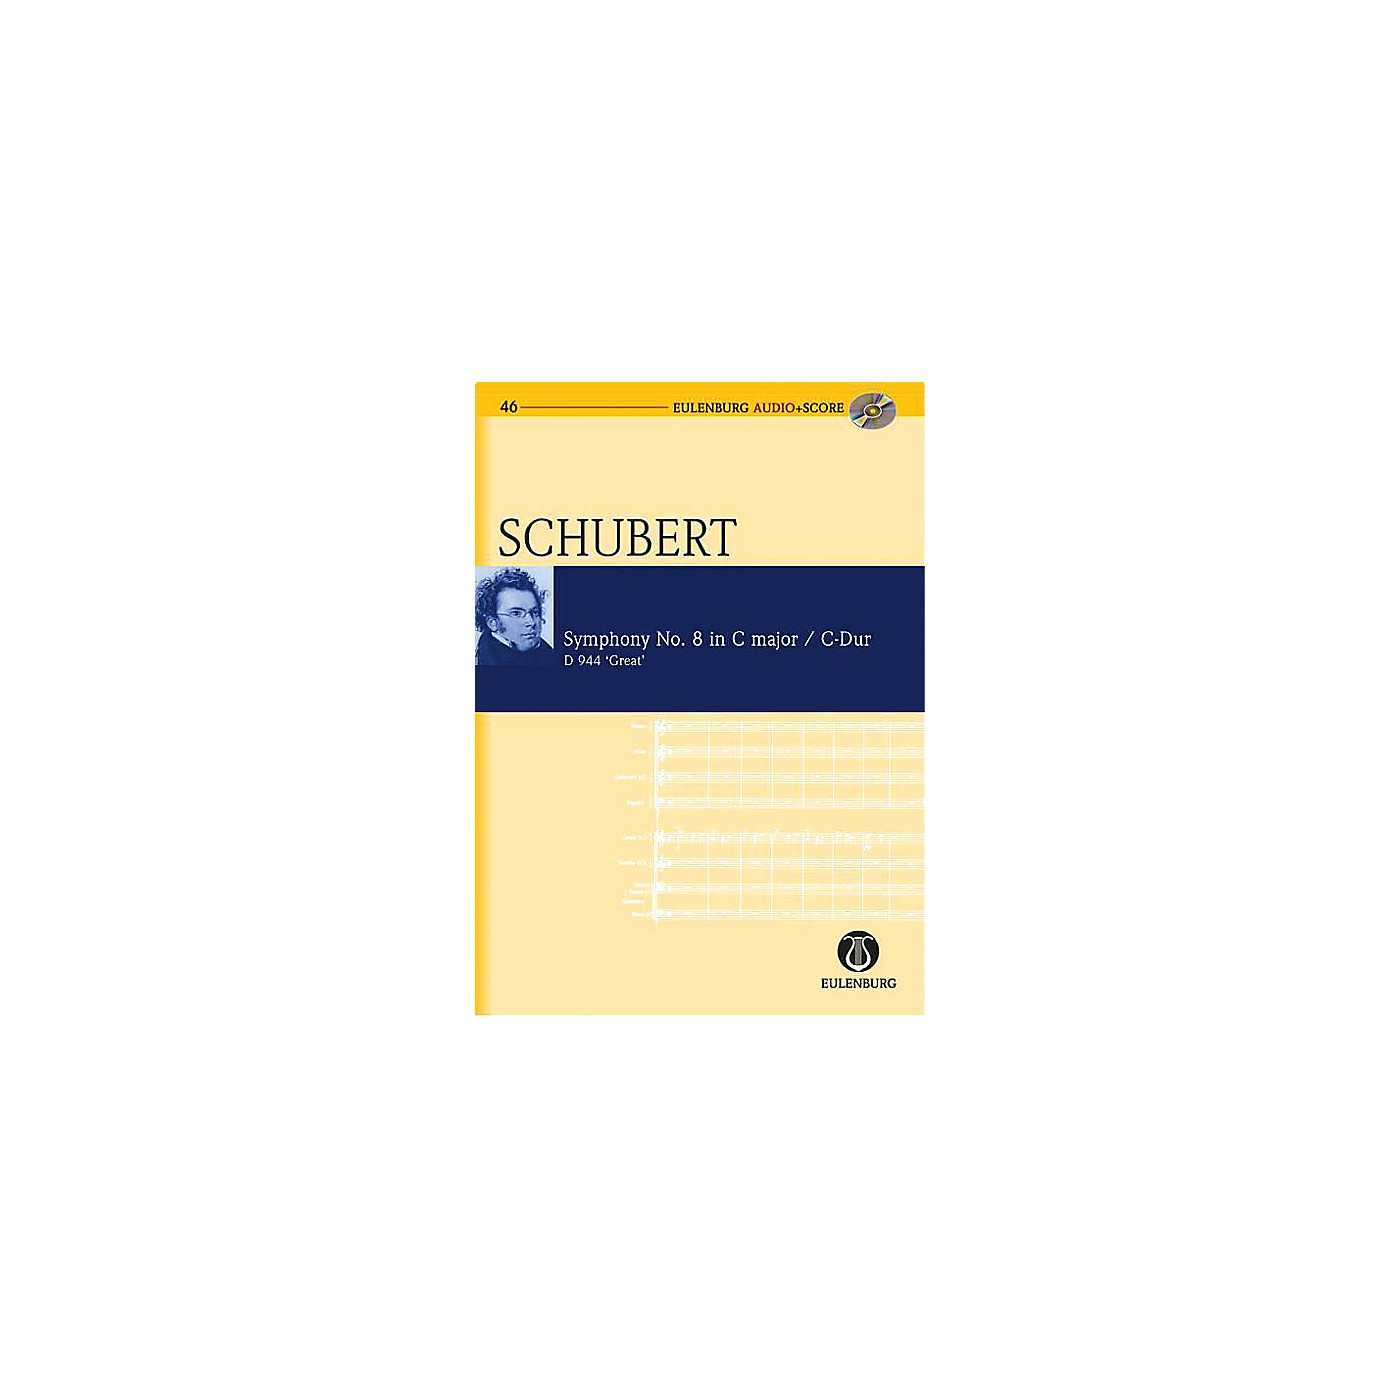 Eulenburg Symphony No. 9 in C Major D 944 The Great Eulenberg Audio plus Score Softcover with CD by Franz Schubert thumbnail